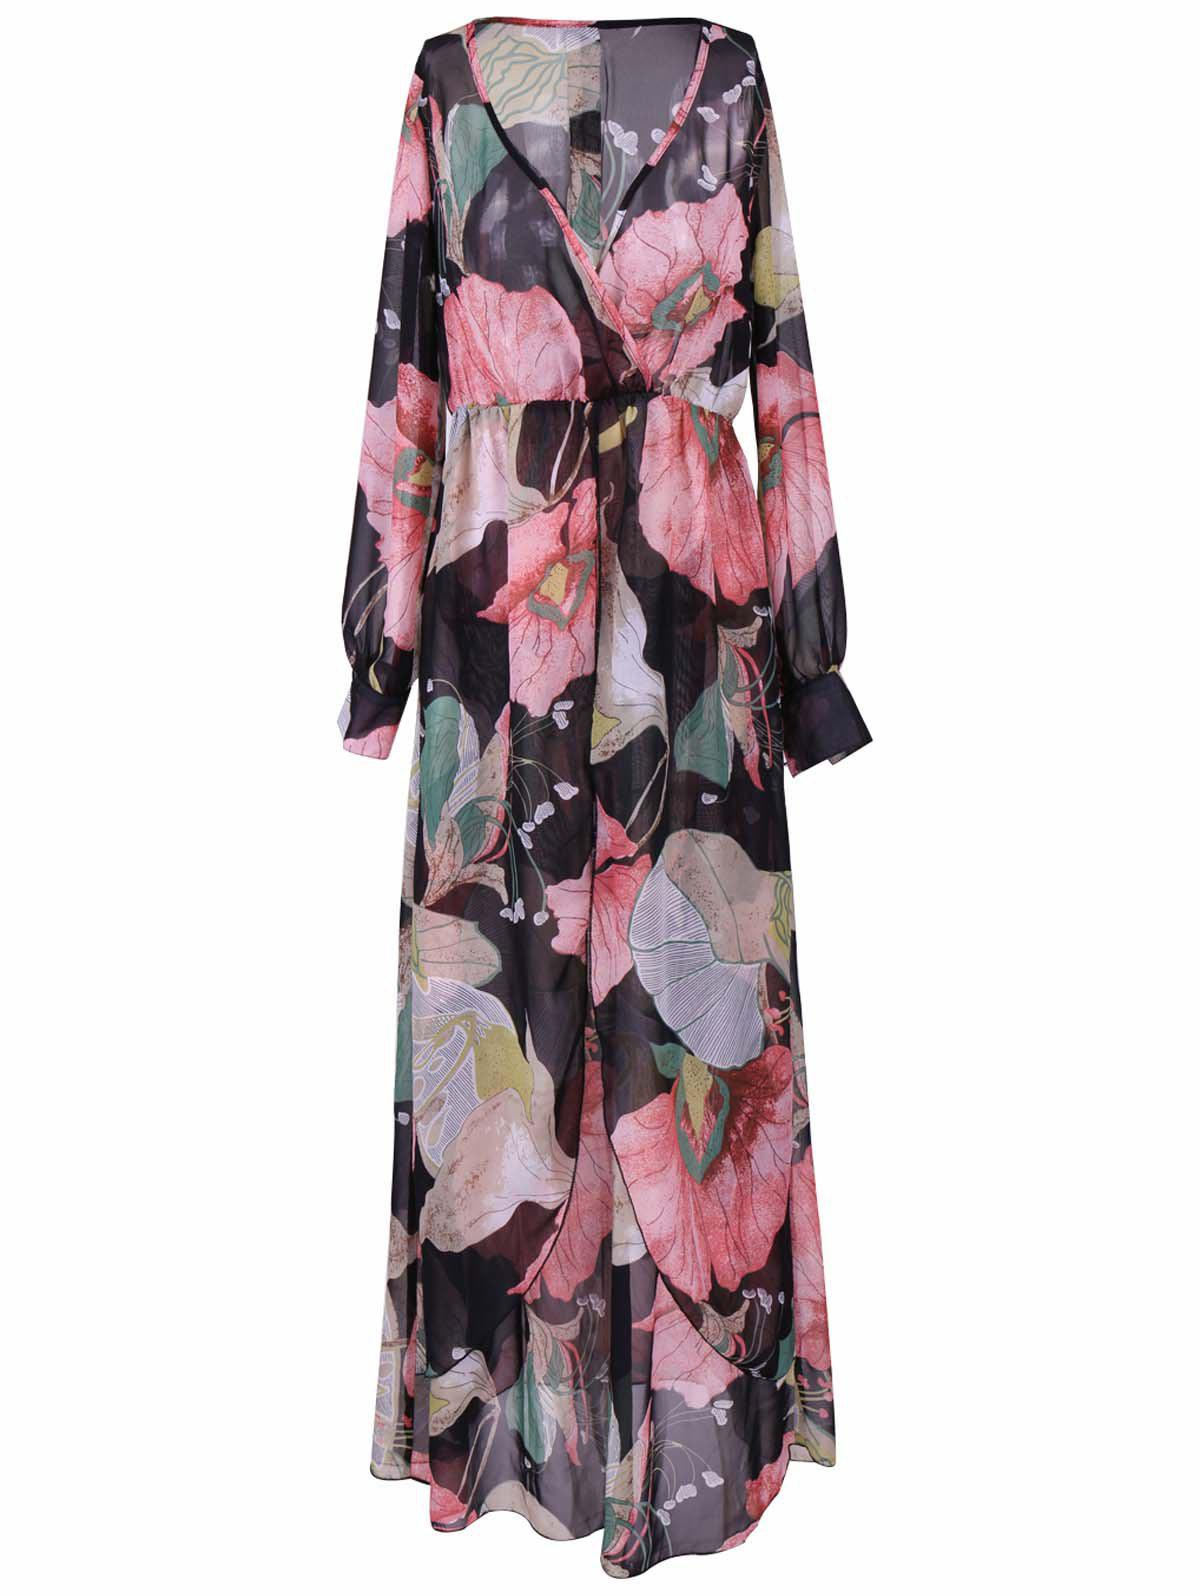 Bohemian Plunging Neck Floral Dress For Women - BLACK XL